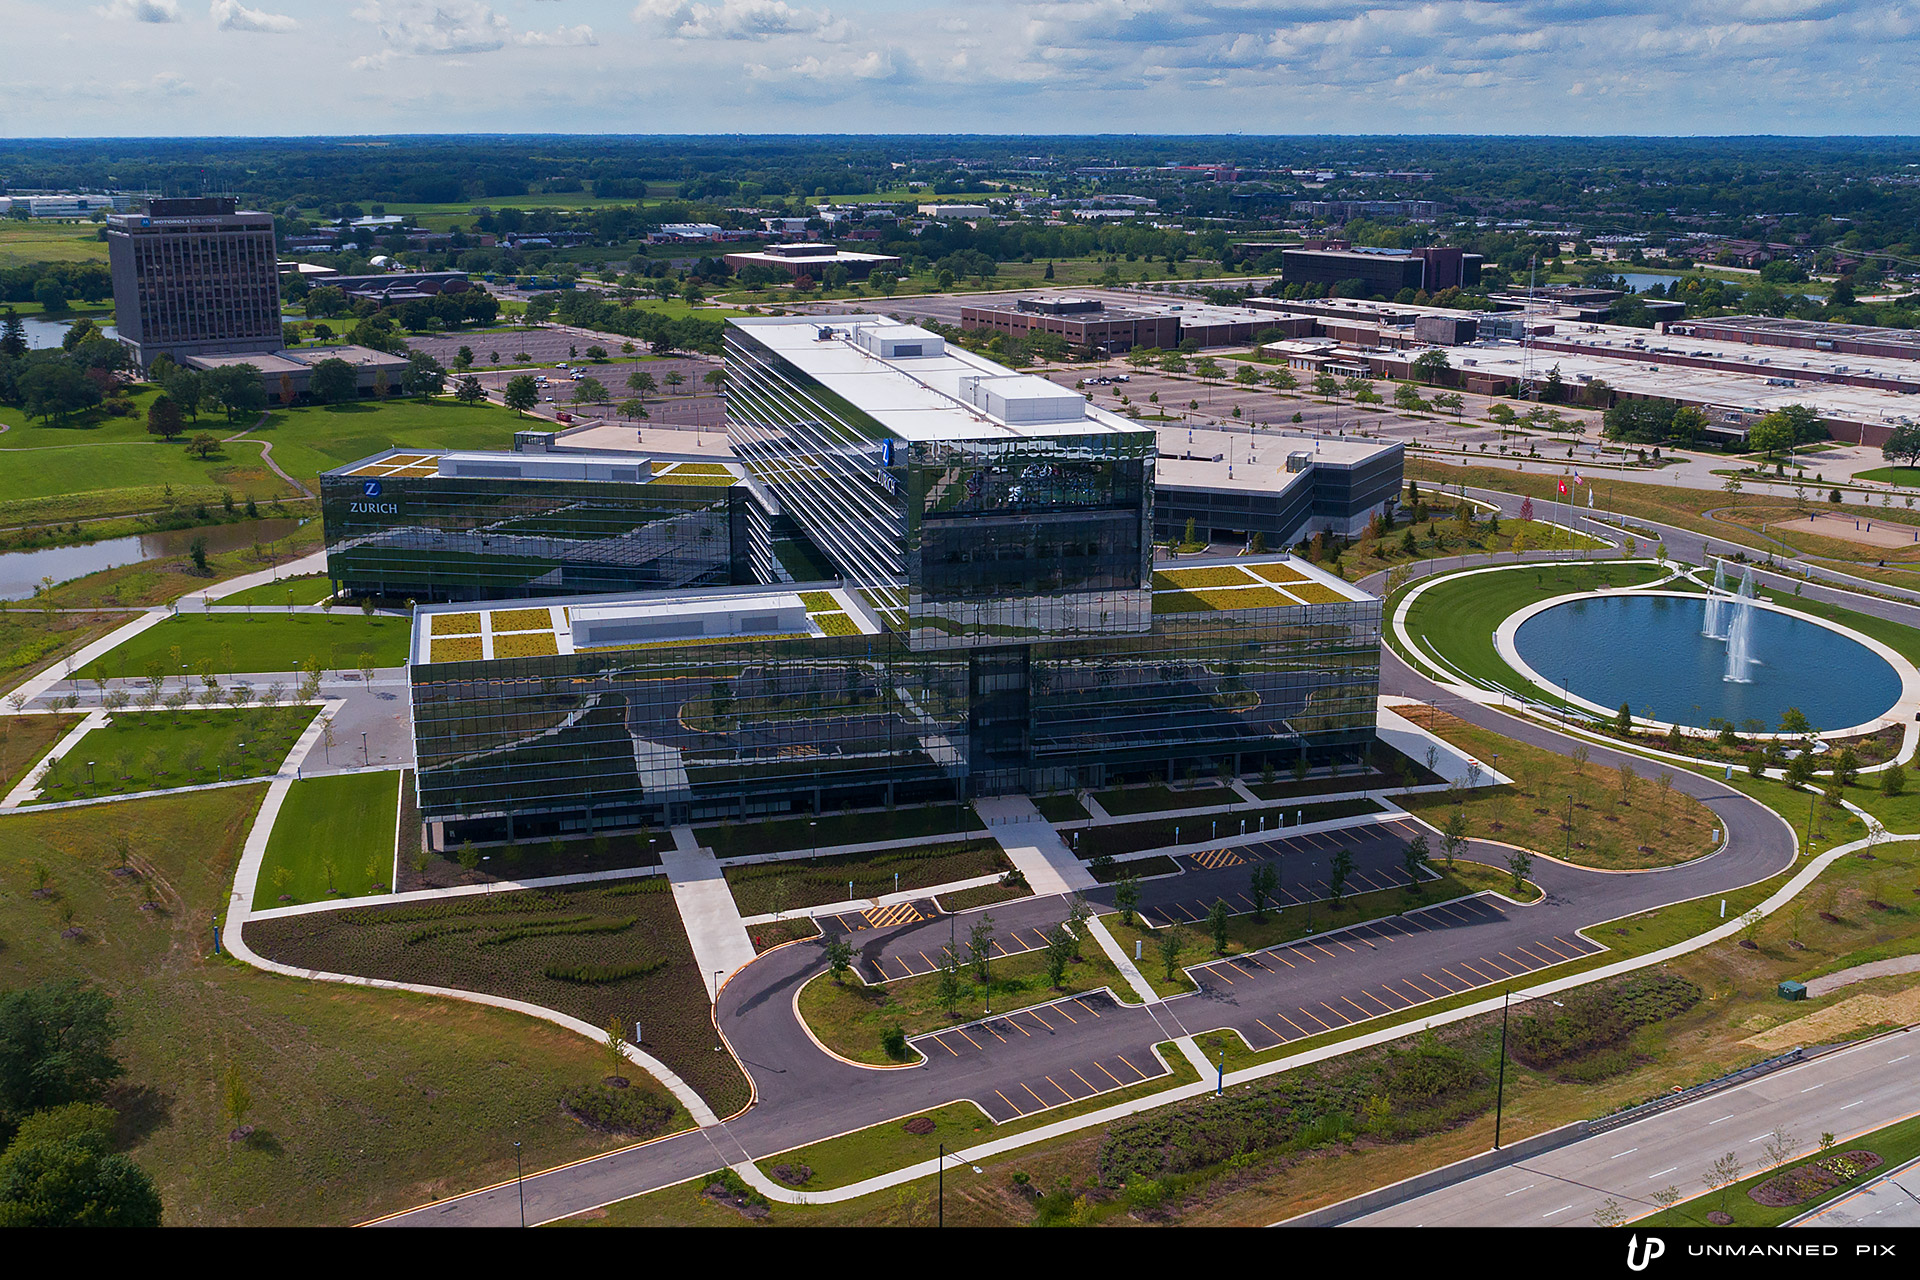 aerial view of the zurich north america headquarters, facing west, photographed by jacob rosenfeld for unmannedpix.com